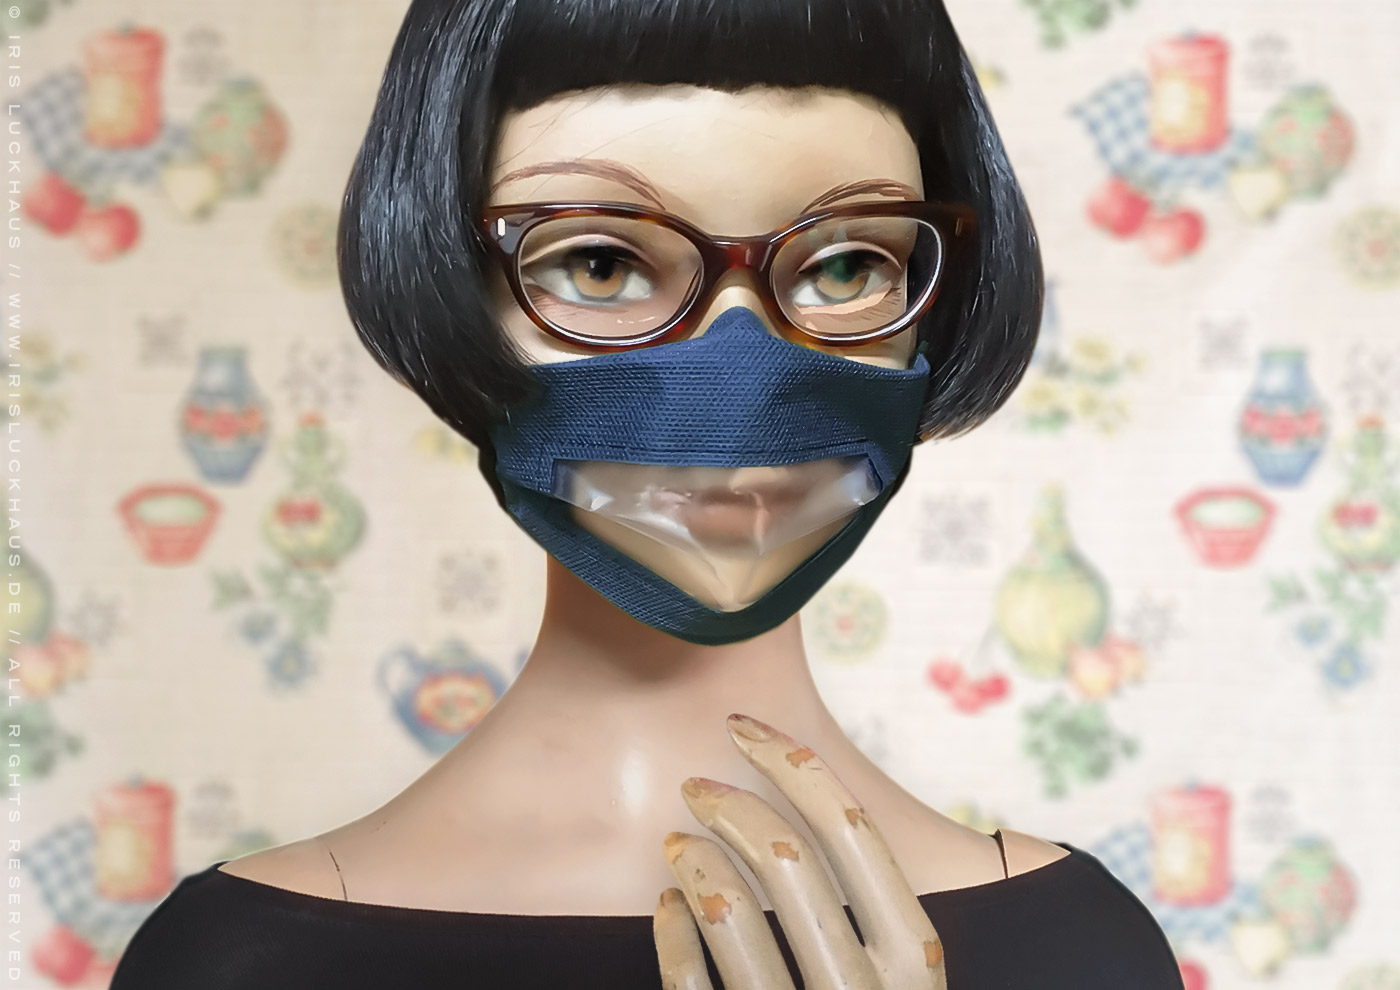 Luckhaus Hybrid Mask, face mask, cloth mask or face covering to sew or make with instructions, cutting pattern and templates, gapless and no fog for glasses wearers and hearing impaired and lip readers, window mask or smile mask, non-slip and breathable thanks to a reverse fold or nose fold, with nose piece or nose wire, pleats, filter opening and side channels or casings for ear loops or head ties by Iris Luckhaus